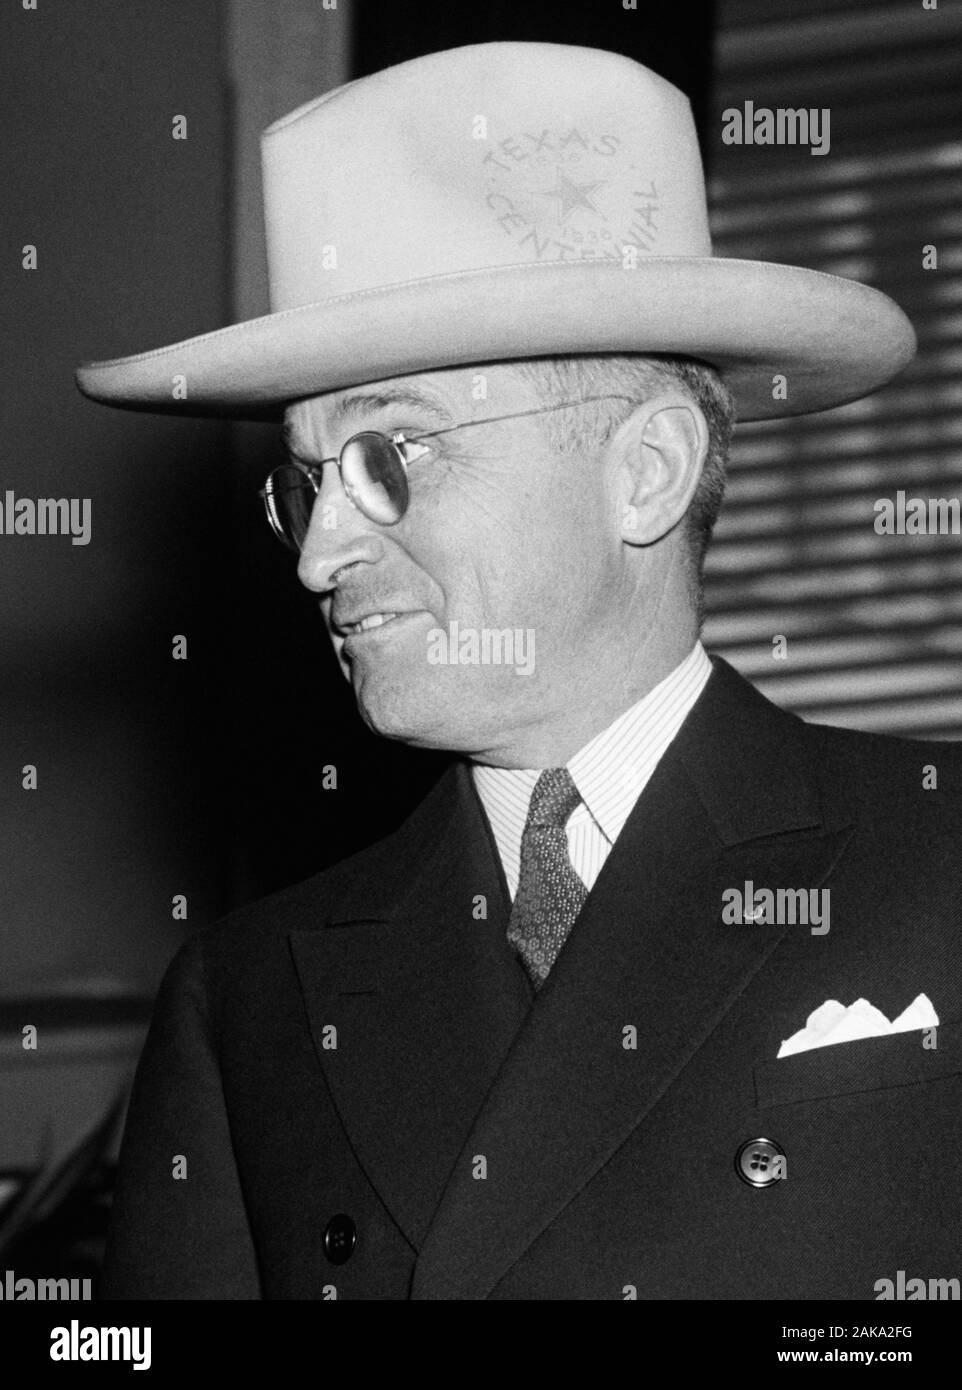 Vintage photo of Missouri Senator - and future President - Harry S Truman. Photo by Harris & Ewing taken in Washington DC on February 17 1938. Truman (1884 – 1972) would later become the 33rd US President (1945 – 1953). Stock Photo